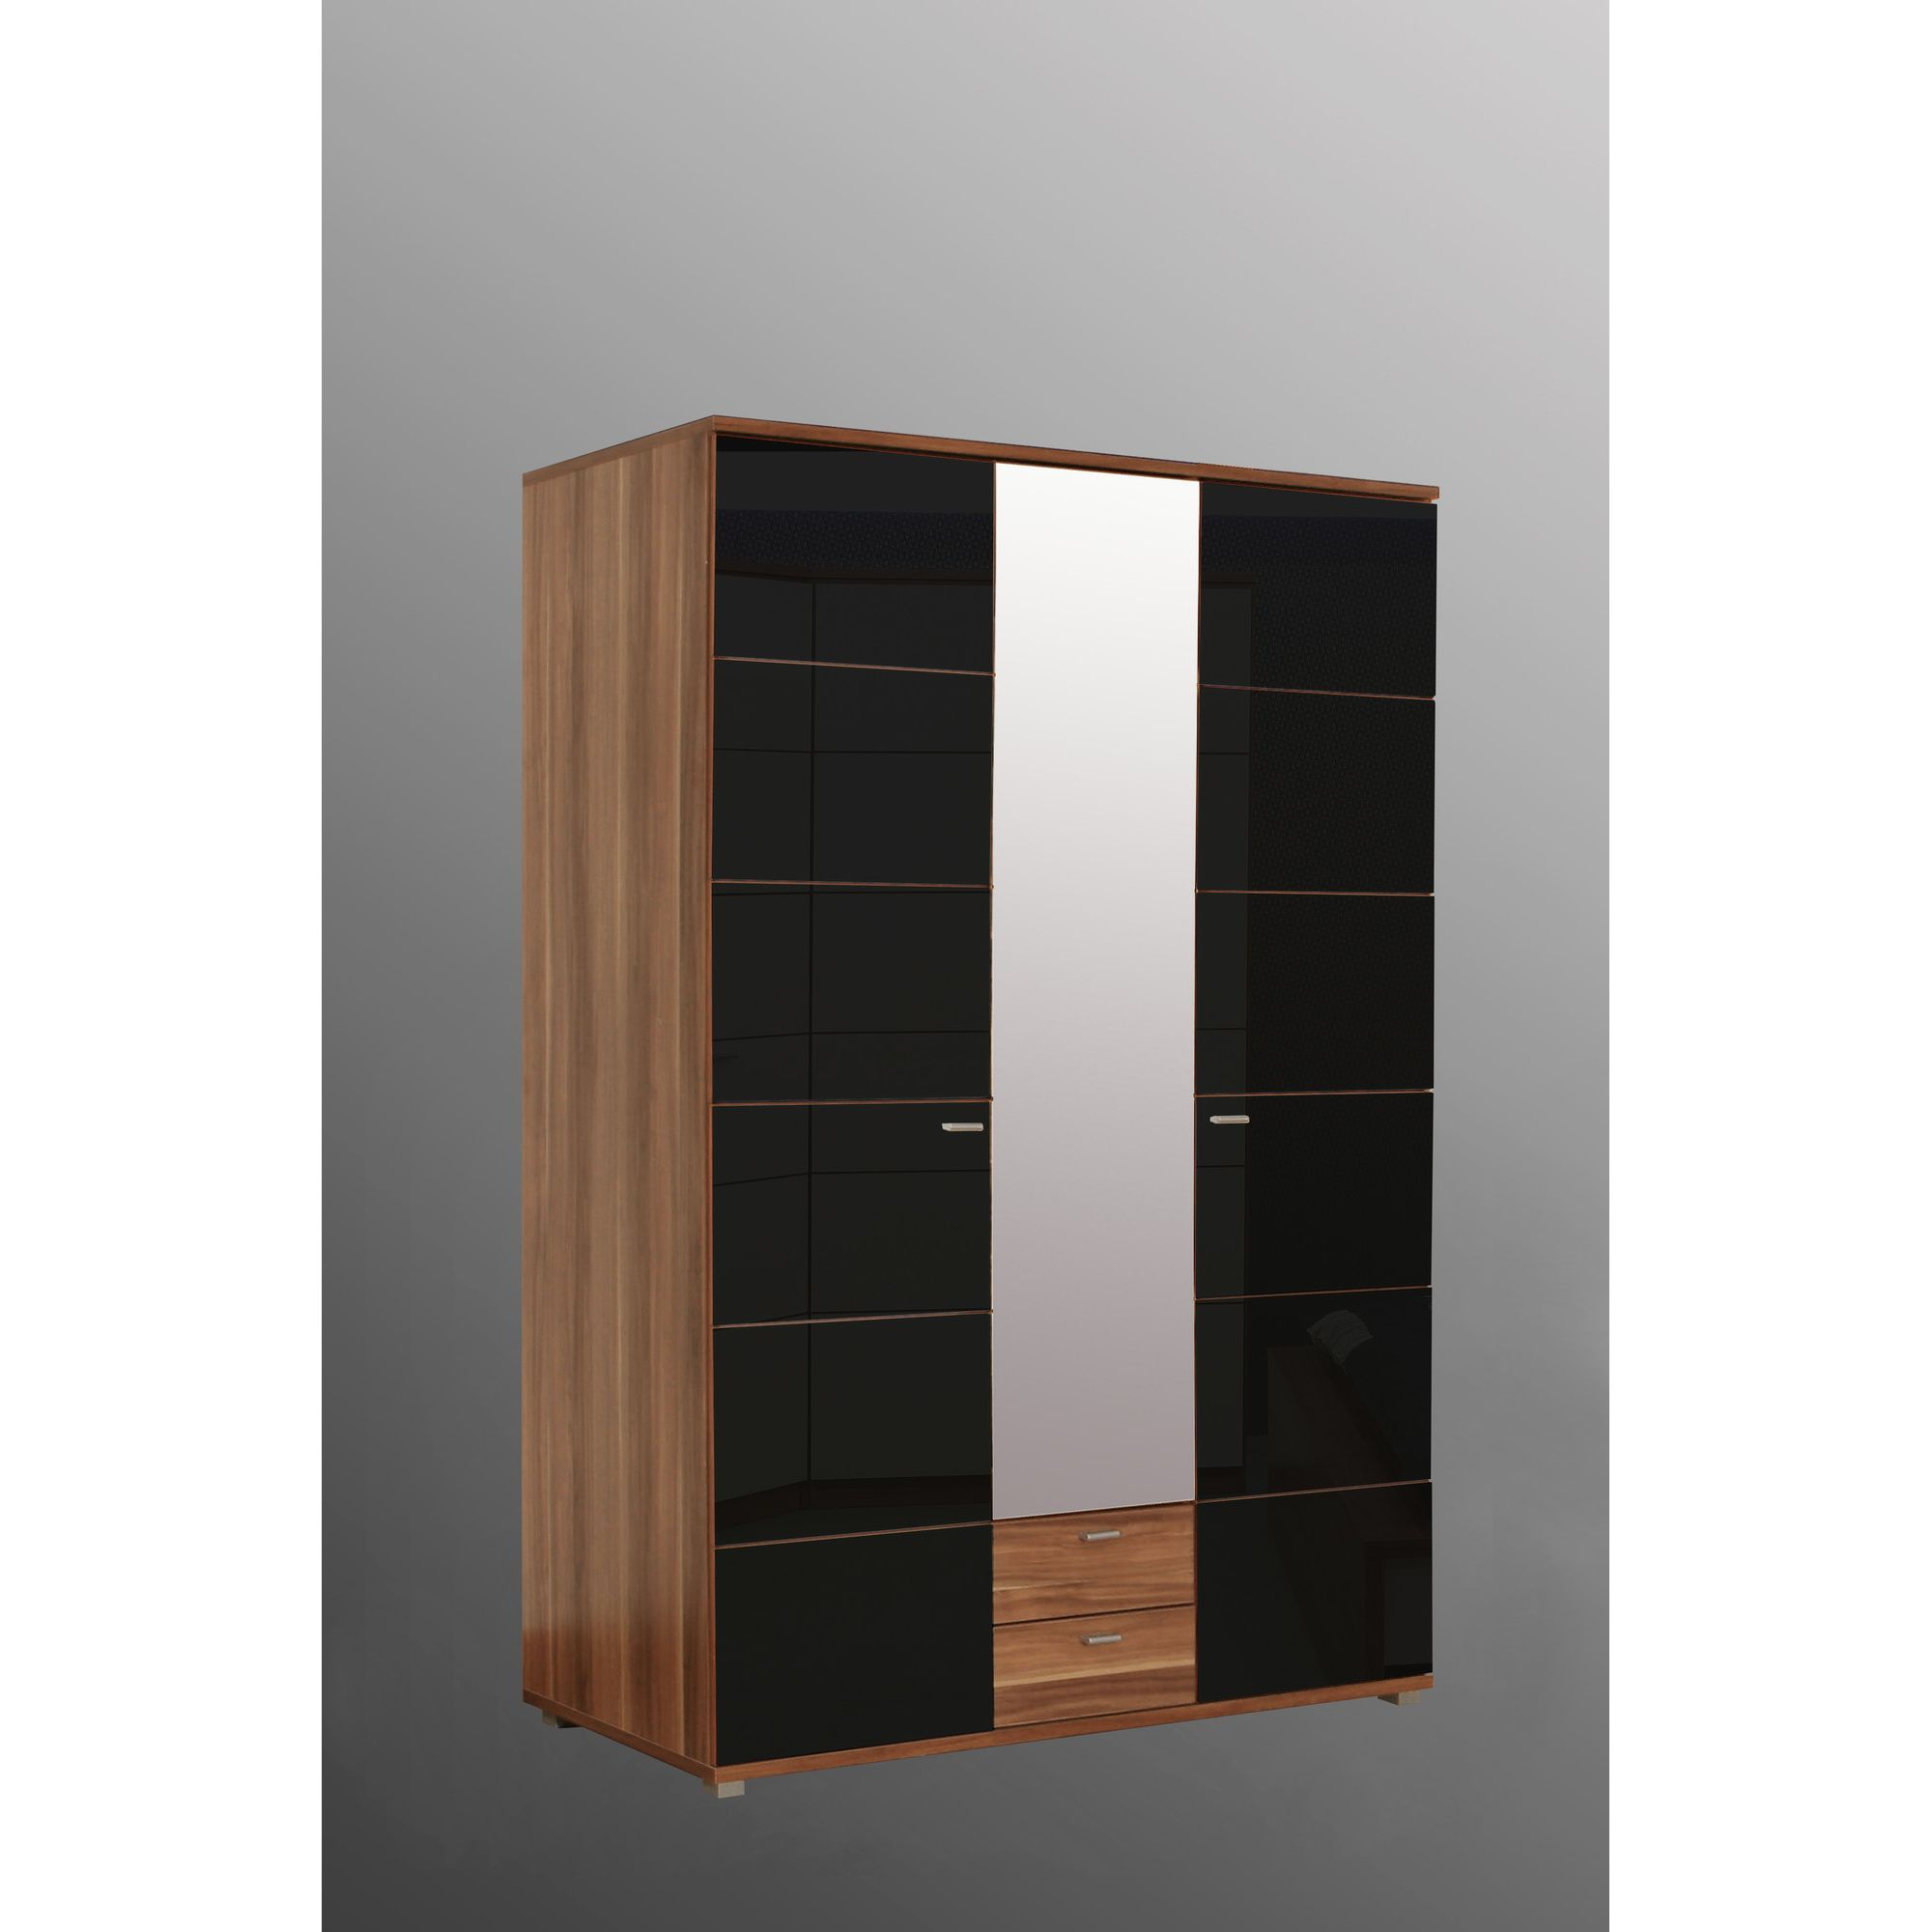 Amos Mann furniture Valencia 3 Door Wardrobe - Black at Tesco Direct